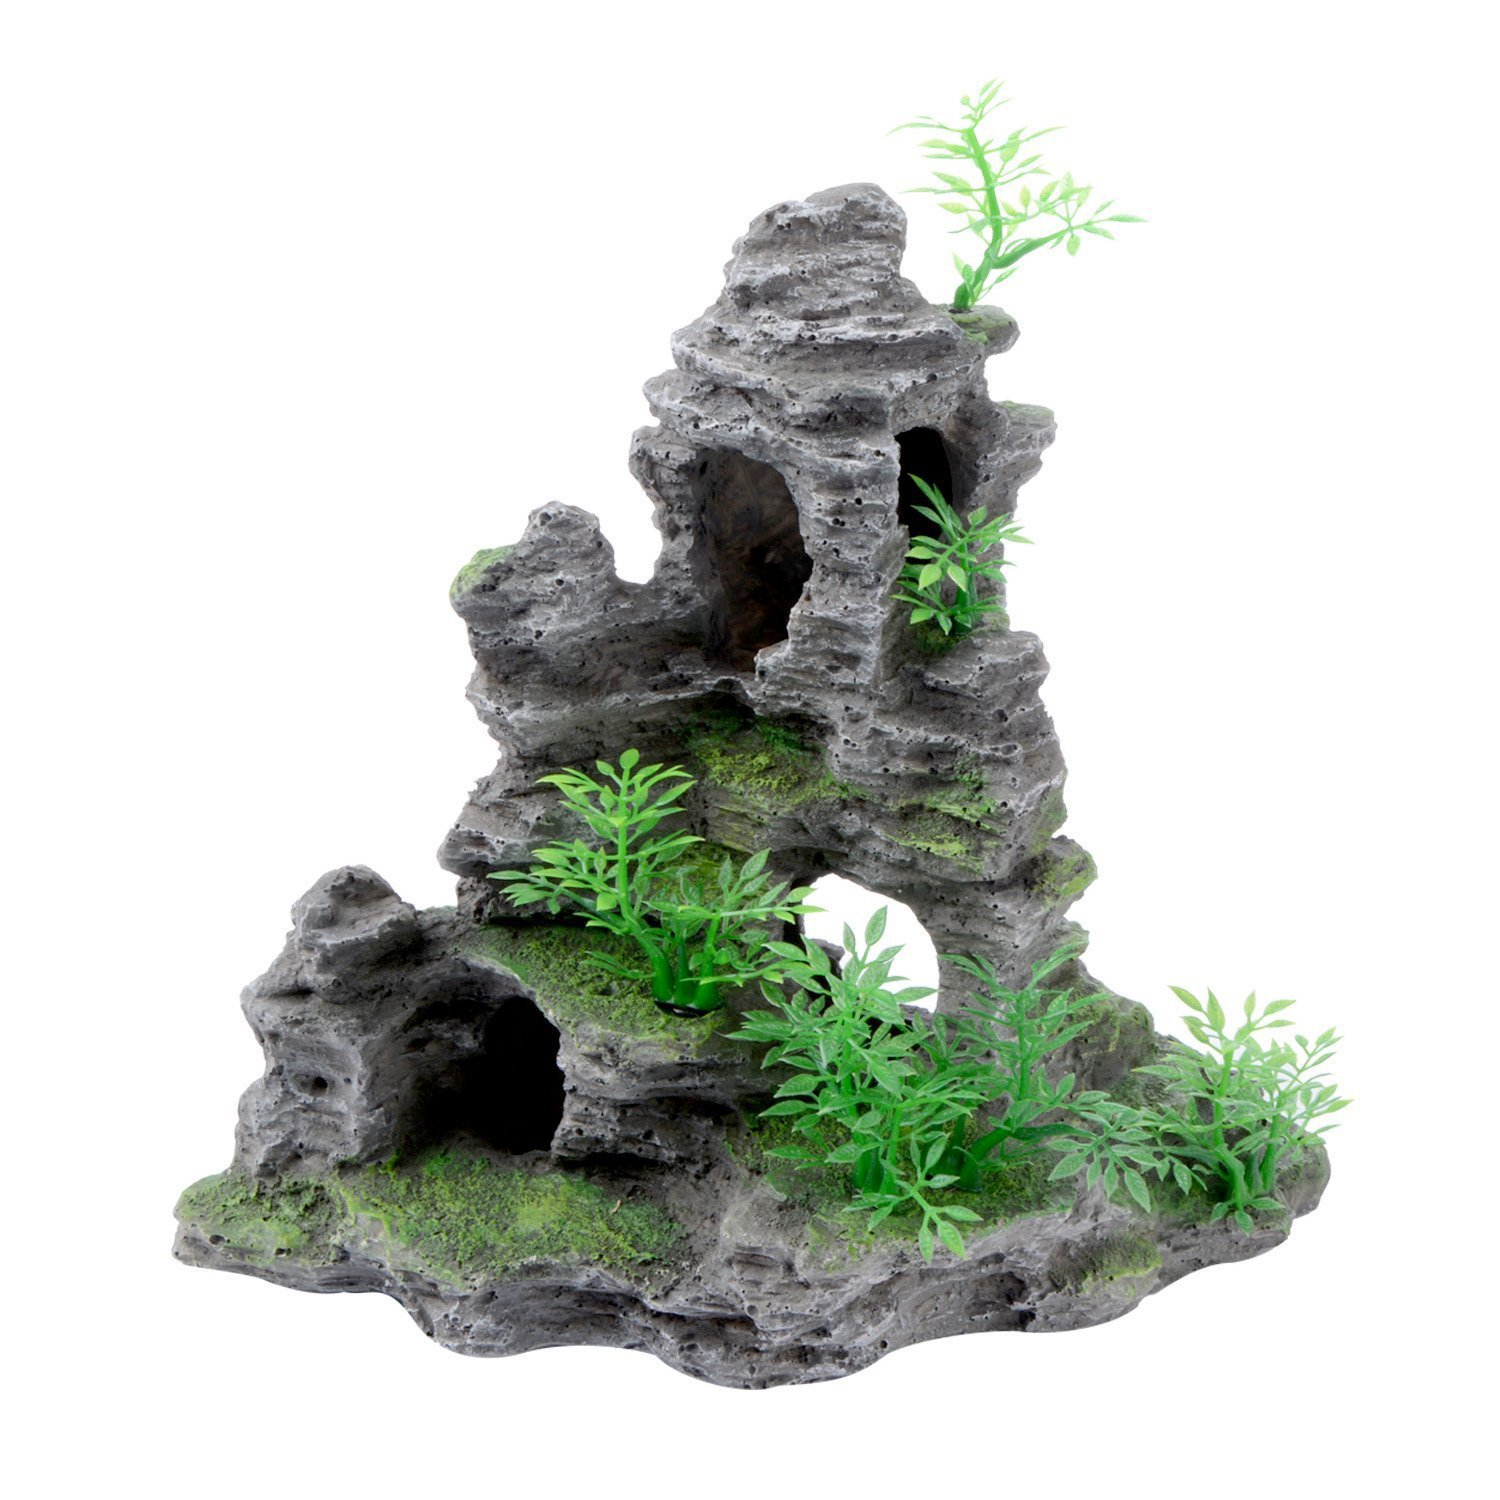 Saim Mountain View Aquarium Ornament